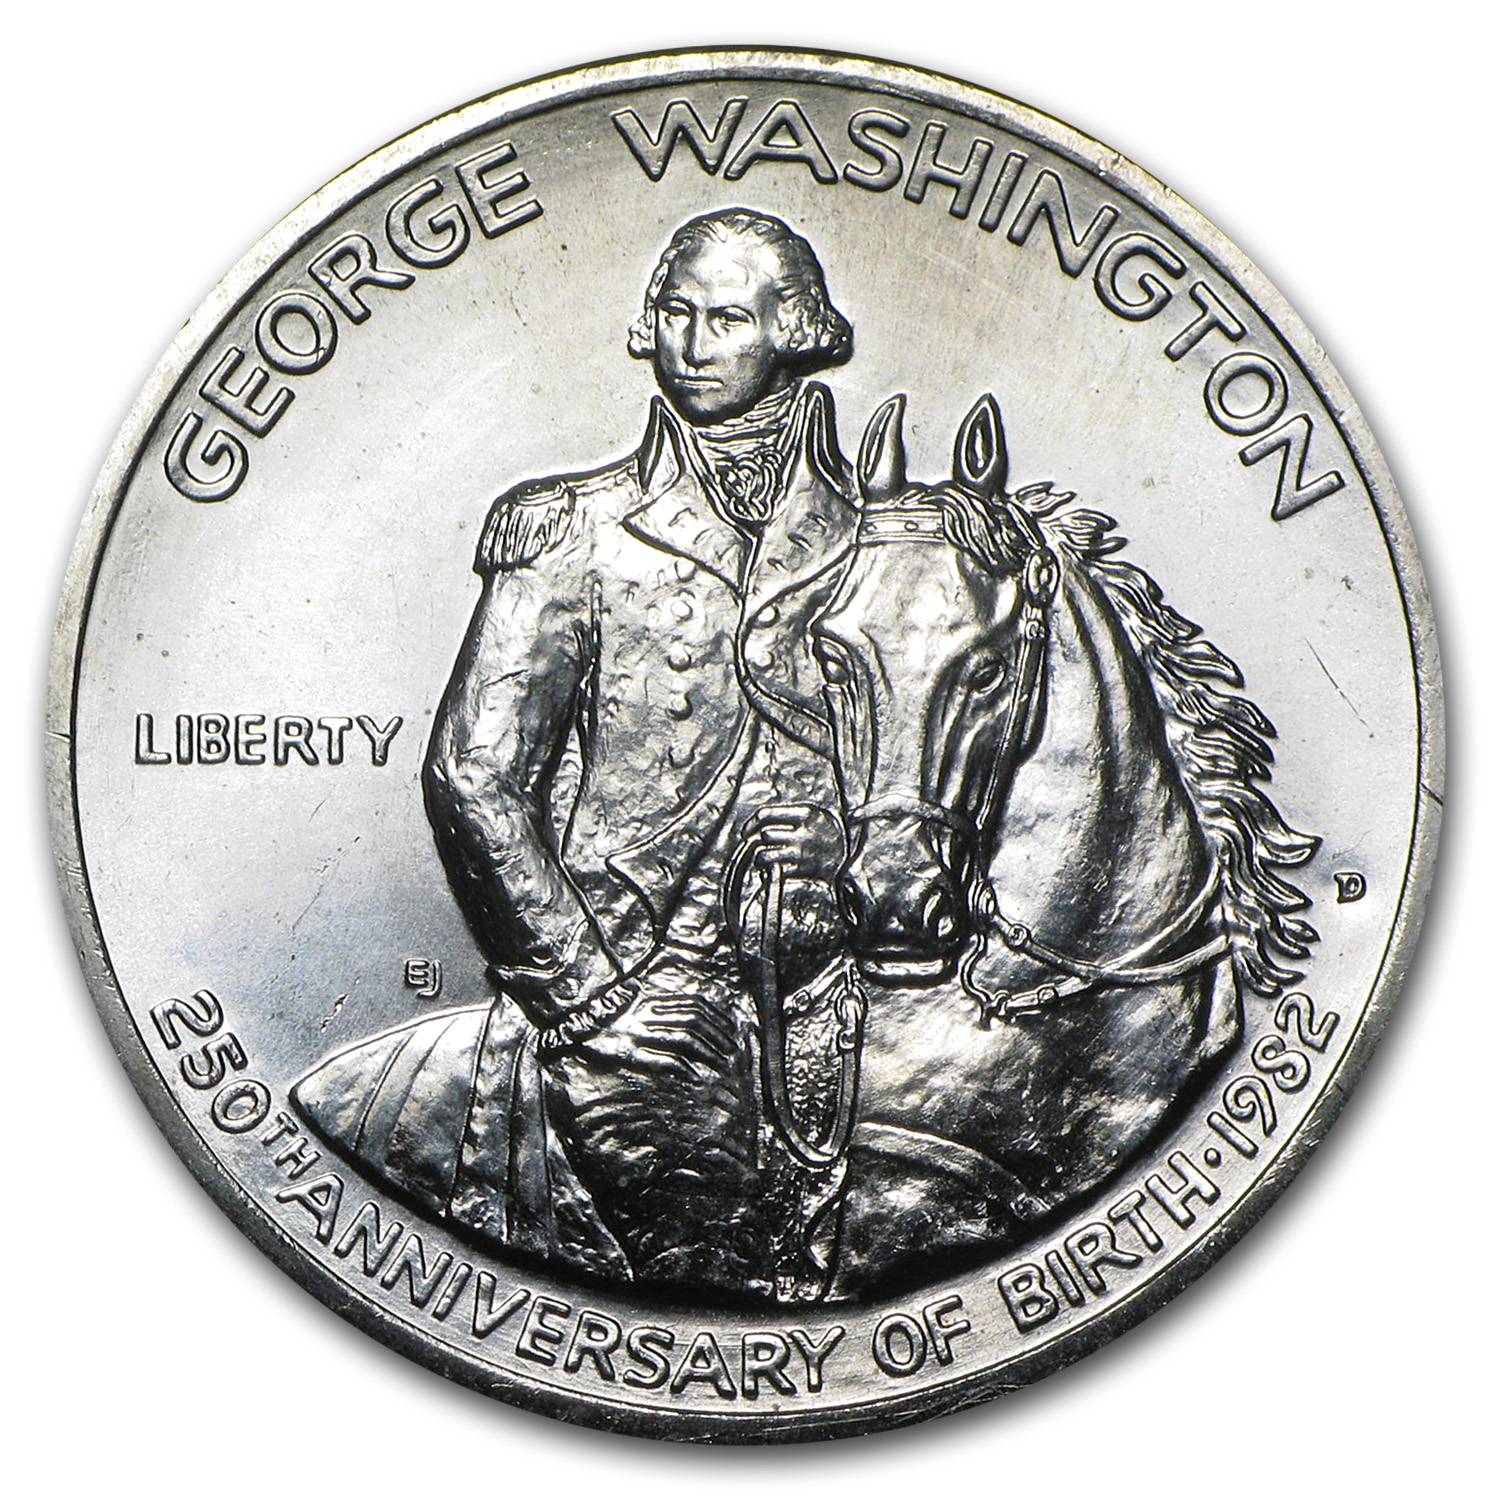 1982 Washington Half-Dollar 90% Silver Commemorative (Prf or Unc)